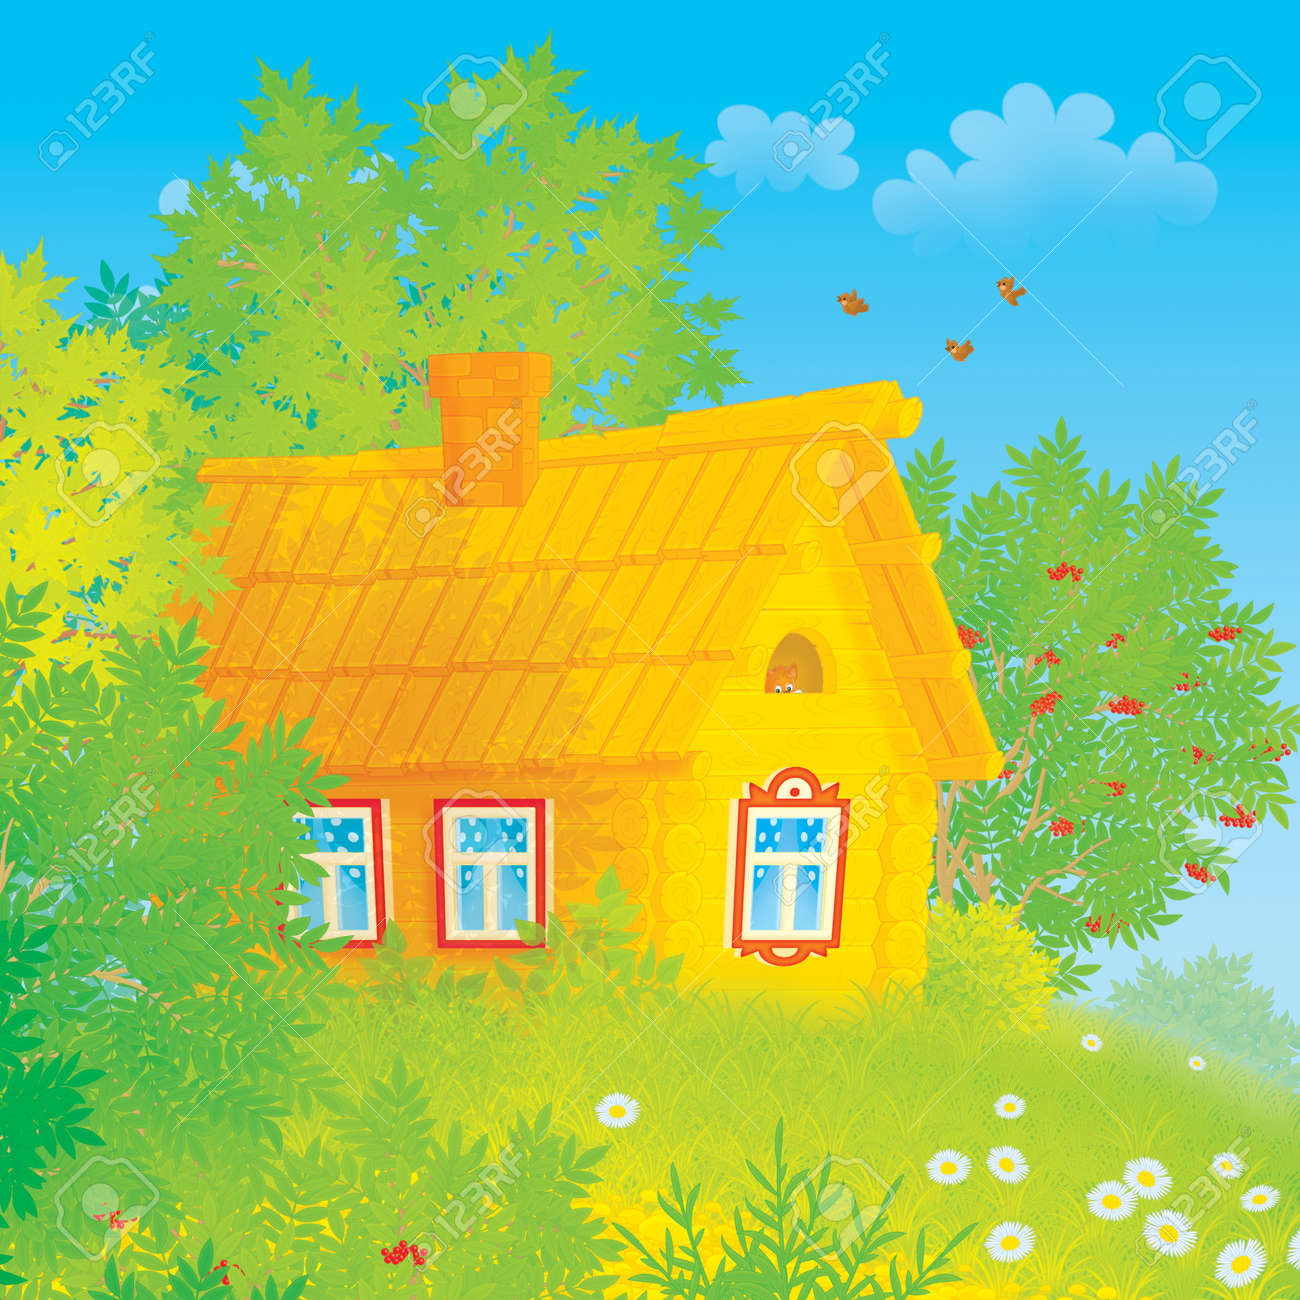 Log rustic house among trees in countryside Stock Photo - 15524895